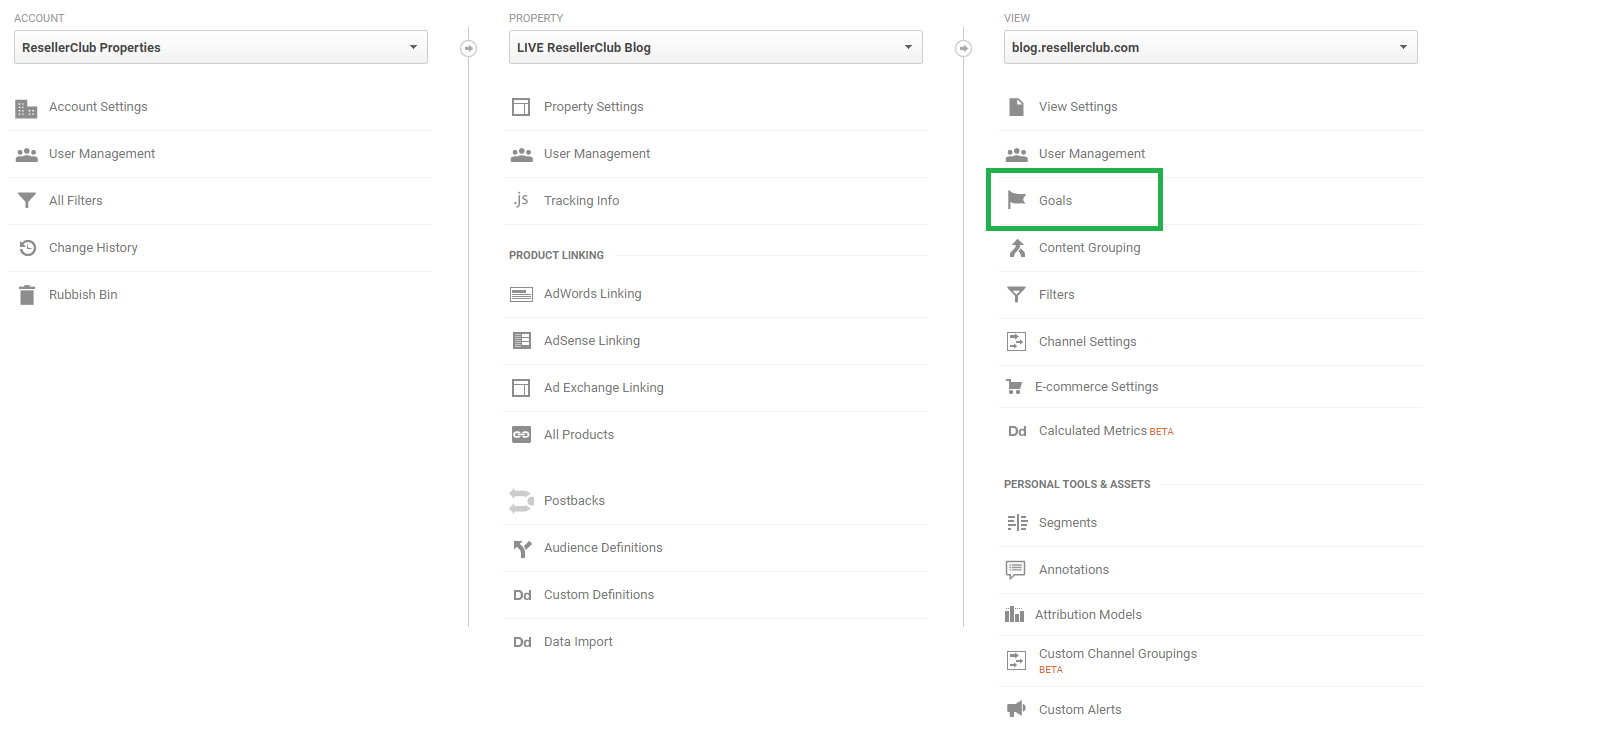 When it comes to assessing the success of an online marketing campaign Getting the most out of Google Analytics – Part I